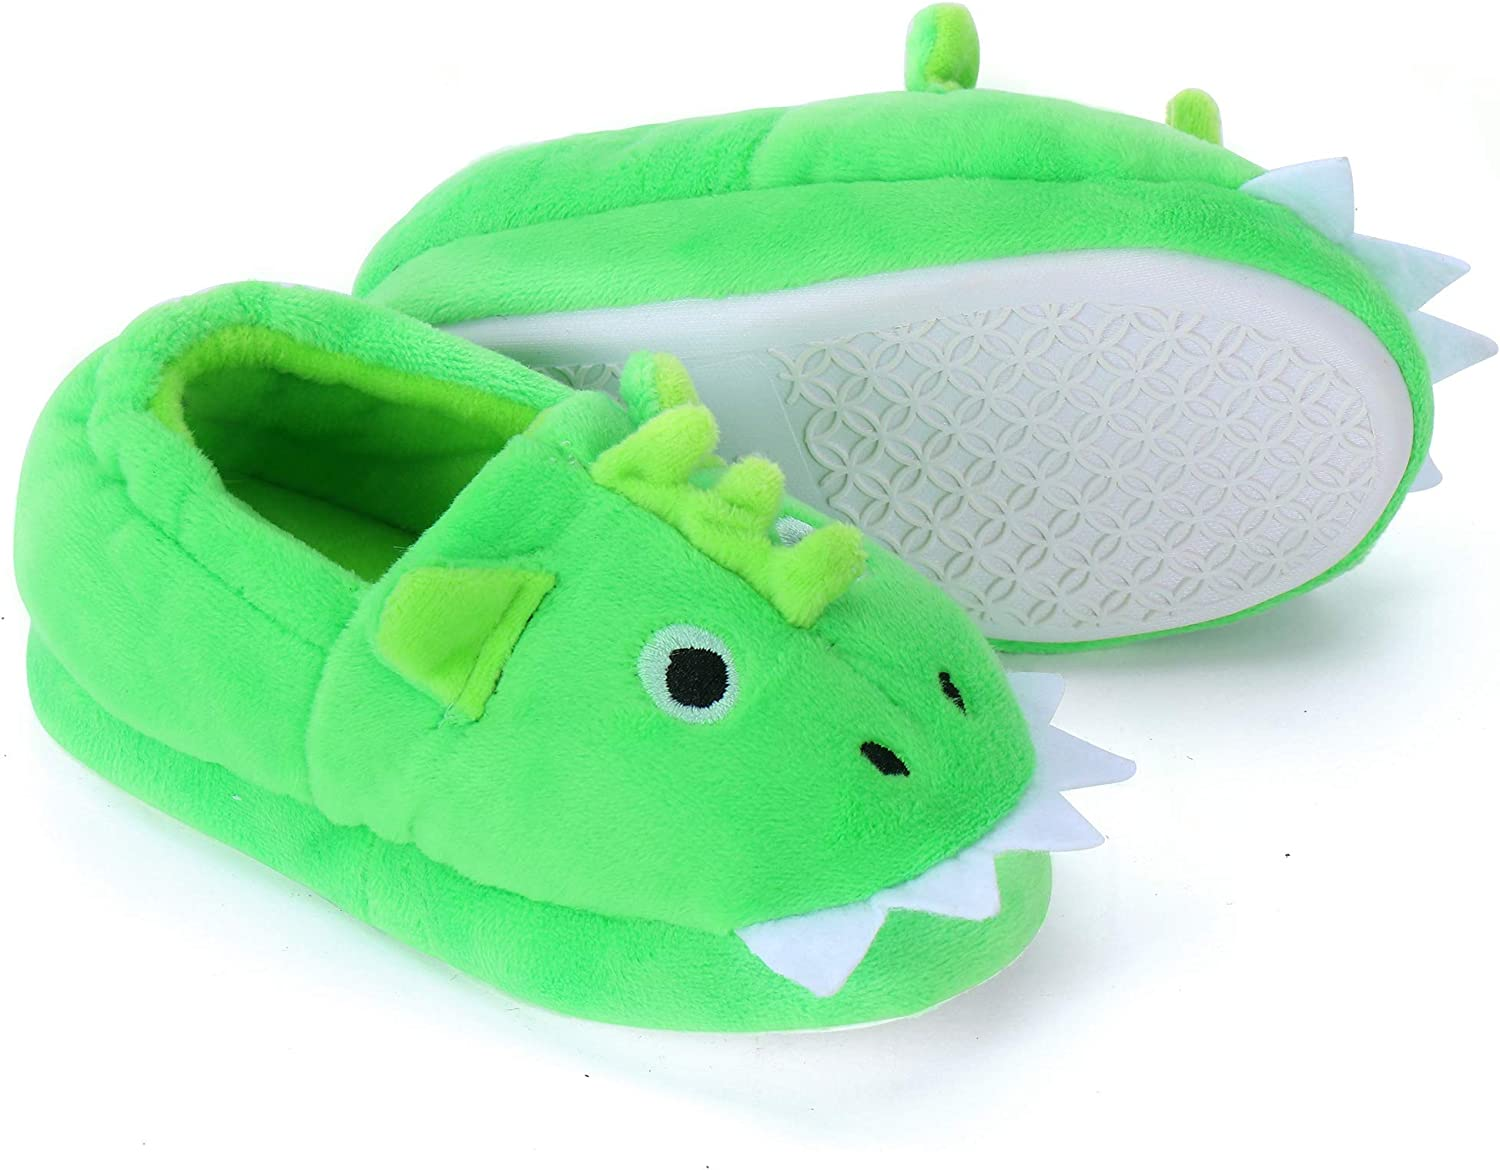 Buy Dream Bridge Warm Animal Soft Cozy Cute Cartoon Plush Non Slip Slippers Winter House Shoes Fuzzy Indoor Bedroom Shoes For Toddler Kids Online In Indonesia B07ybtnbxj